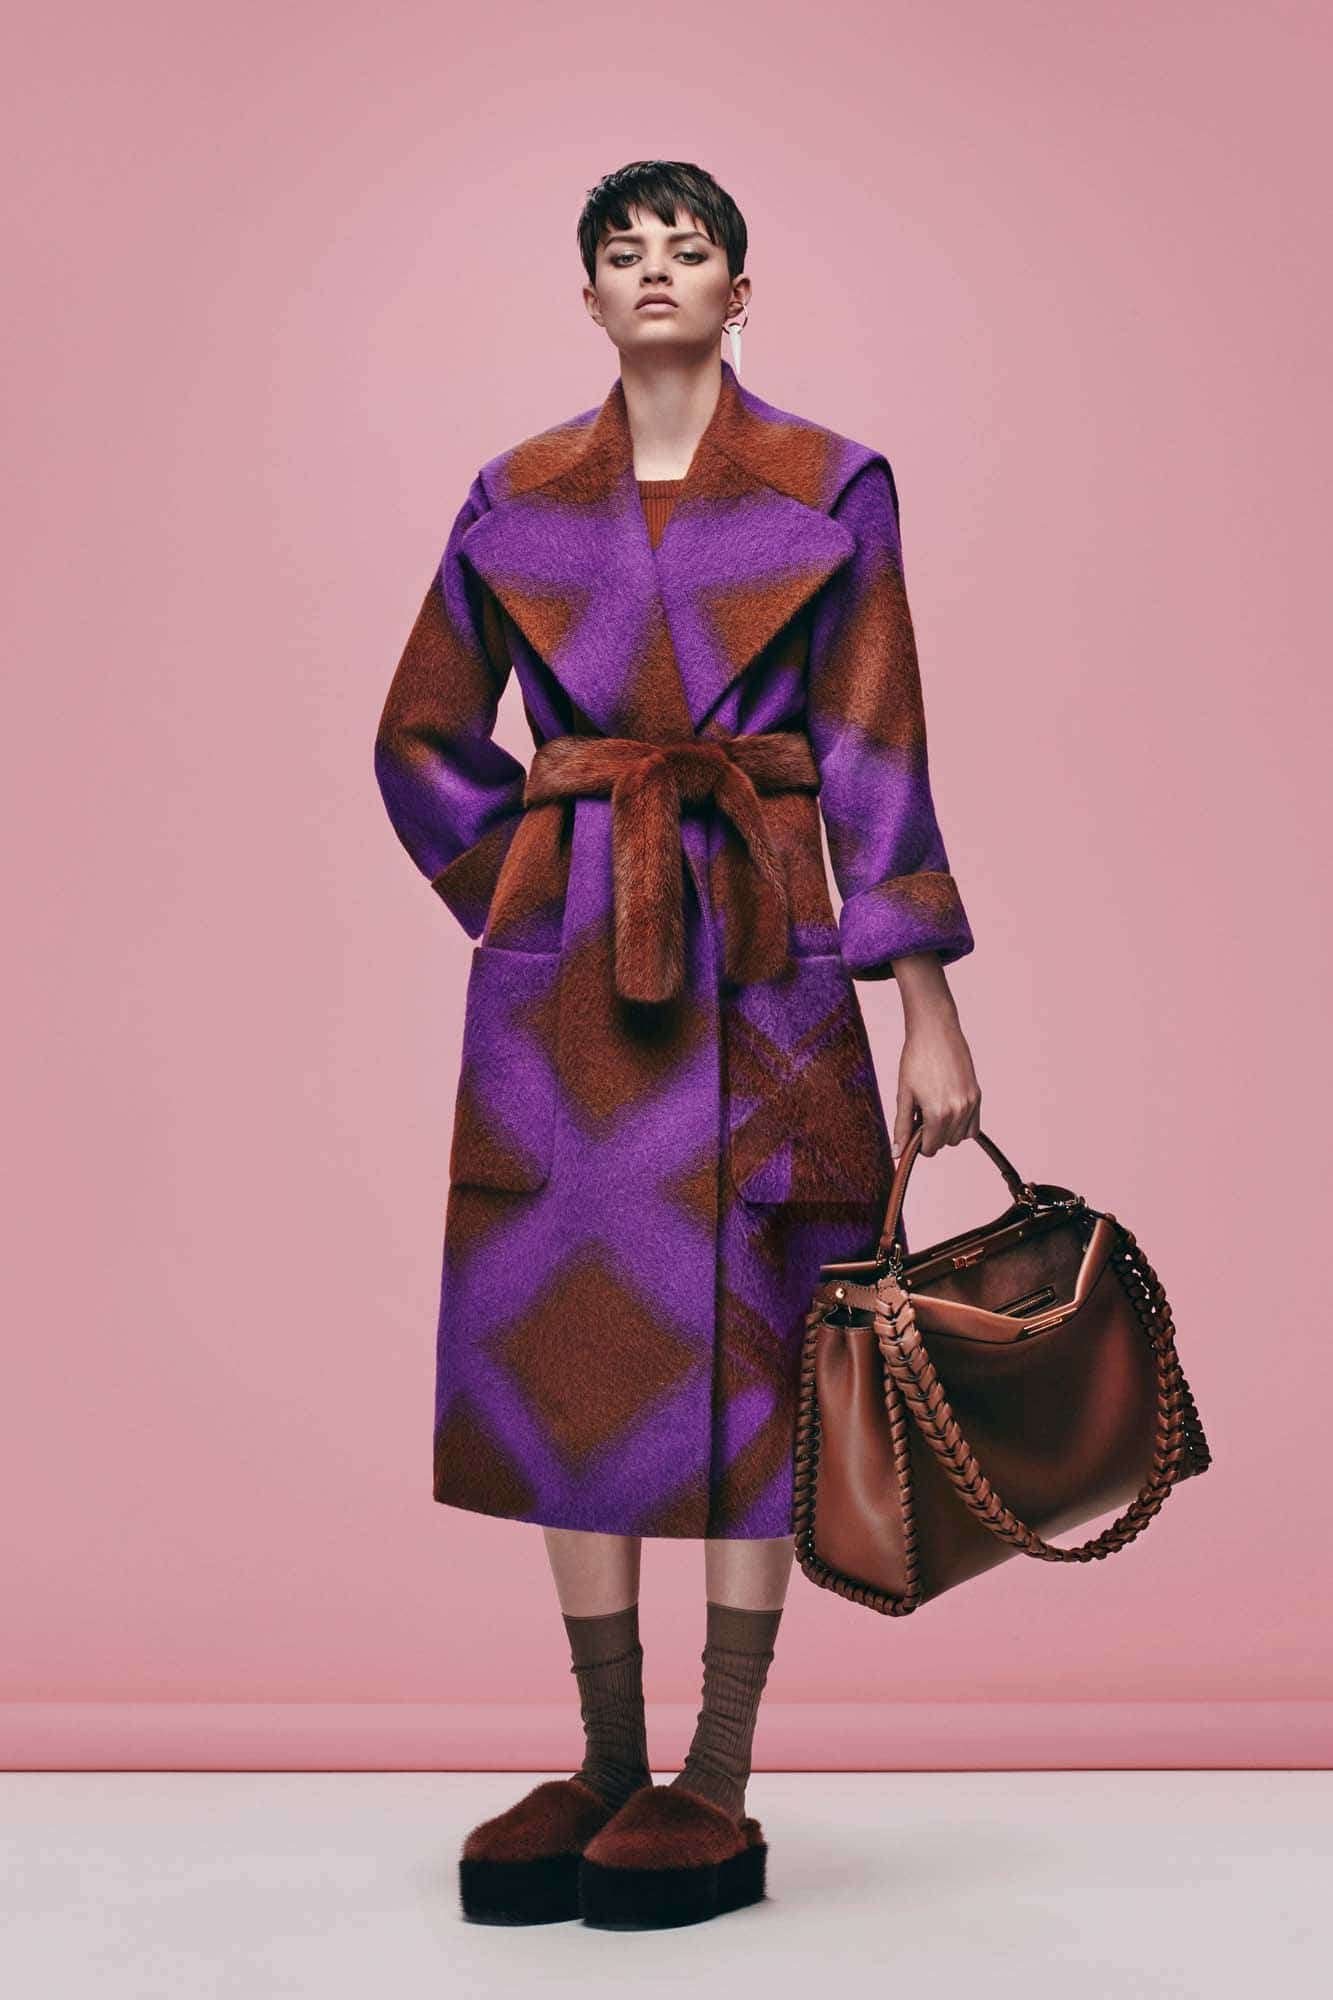 2016 Fall 2017 Winter Fashion Trends For Teens: Fendi Pre-Fall 2016 Bag Collection